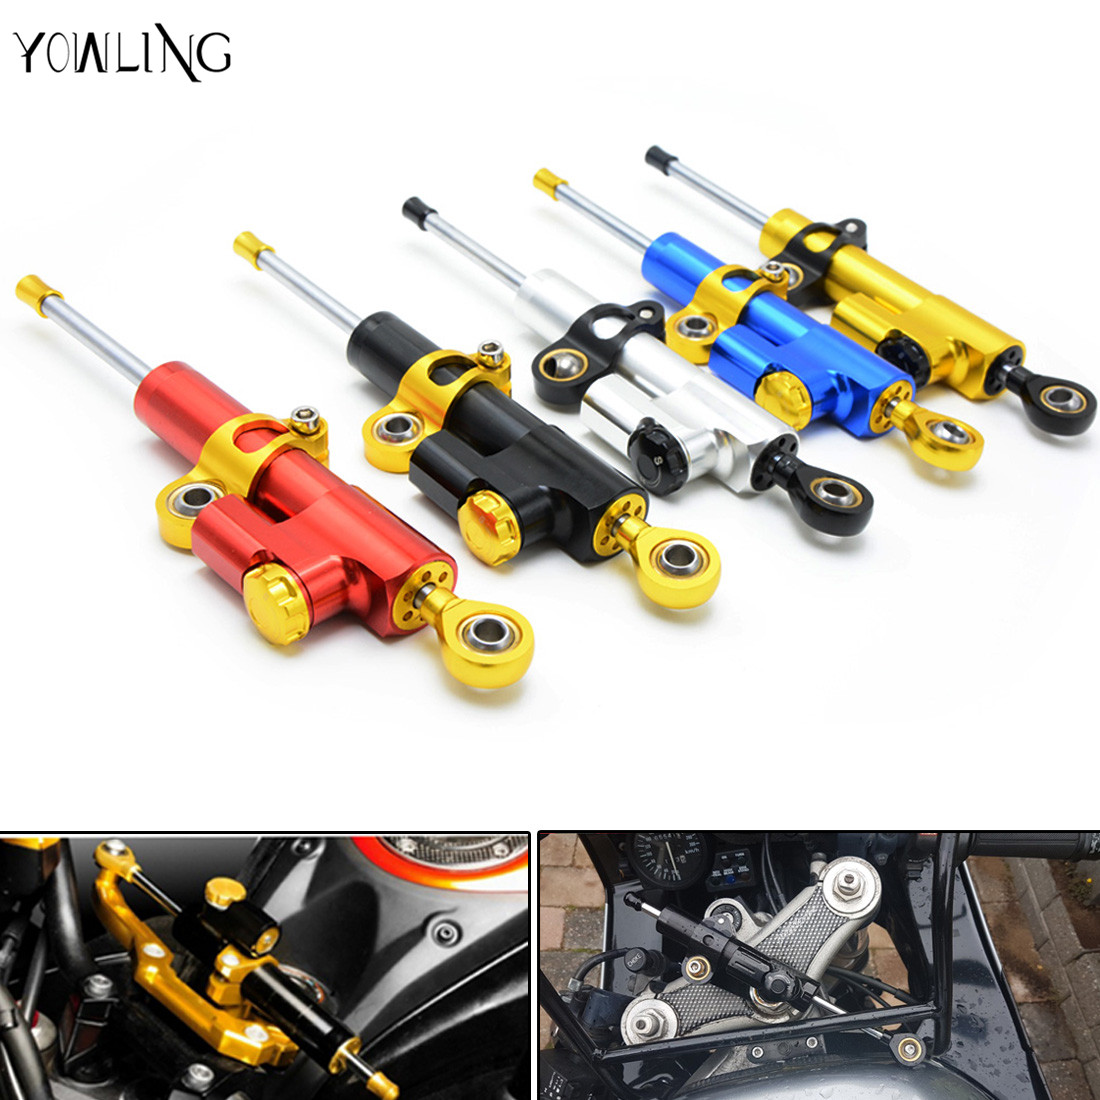 universal motorbcycle steering damper CNC Aluminum steering damper stabilizer linear reversed safety control for yamaha Kawasaki brand new universal motorcycle cnc aluminum steering damper alloy stabilizer linear reversed safety control 5 colors optional